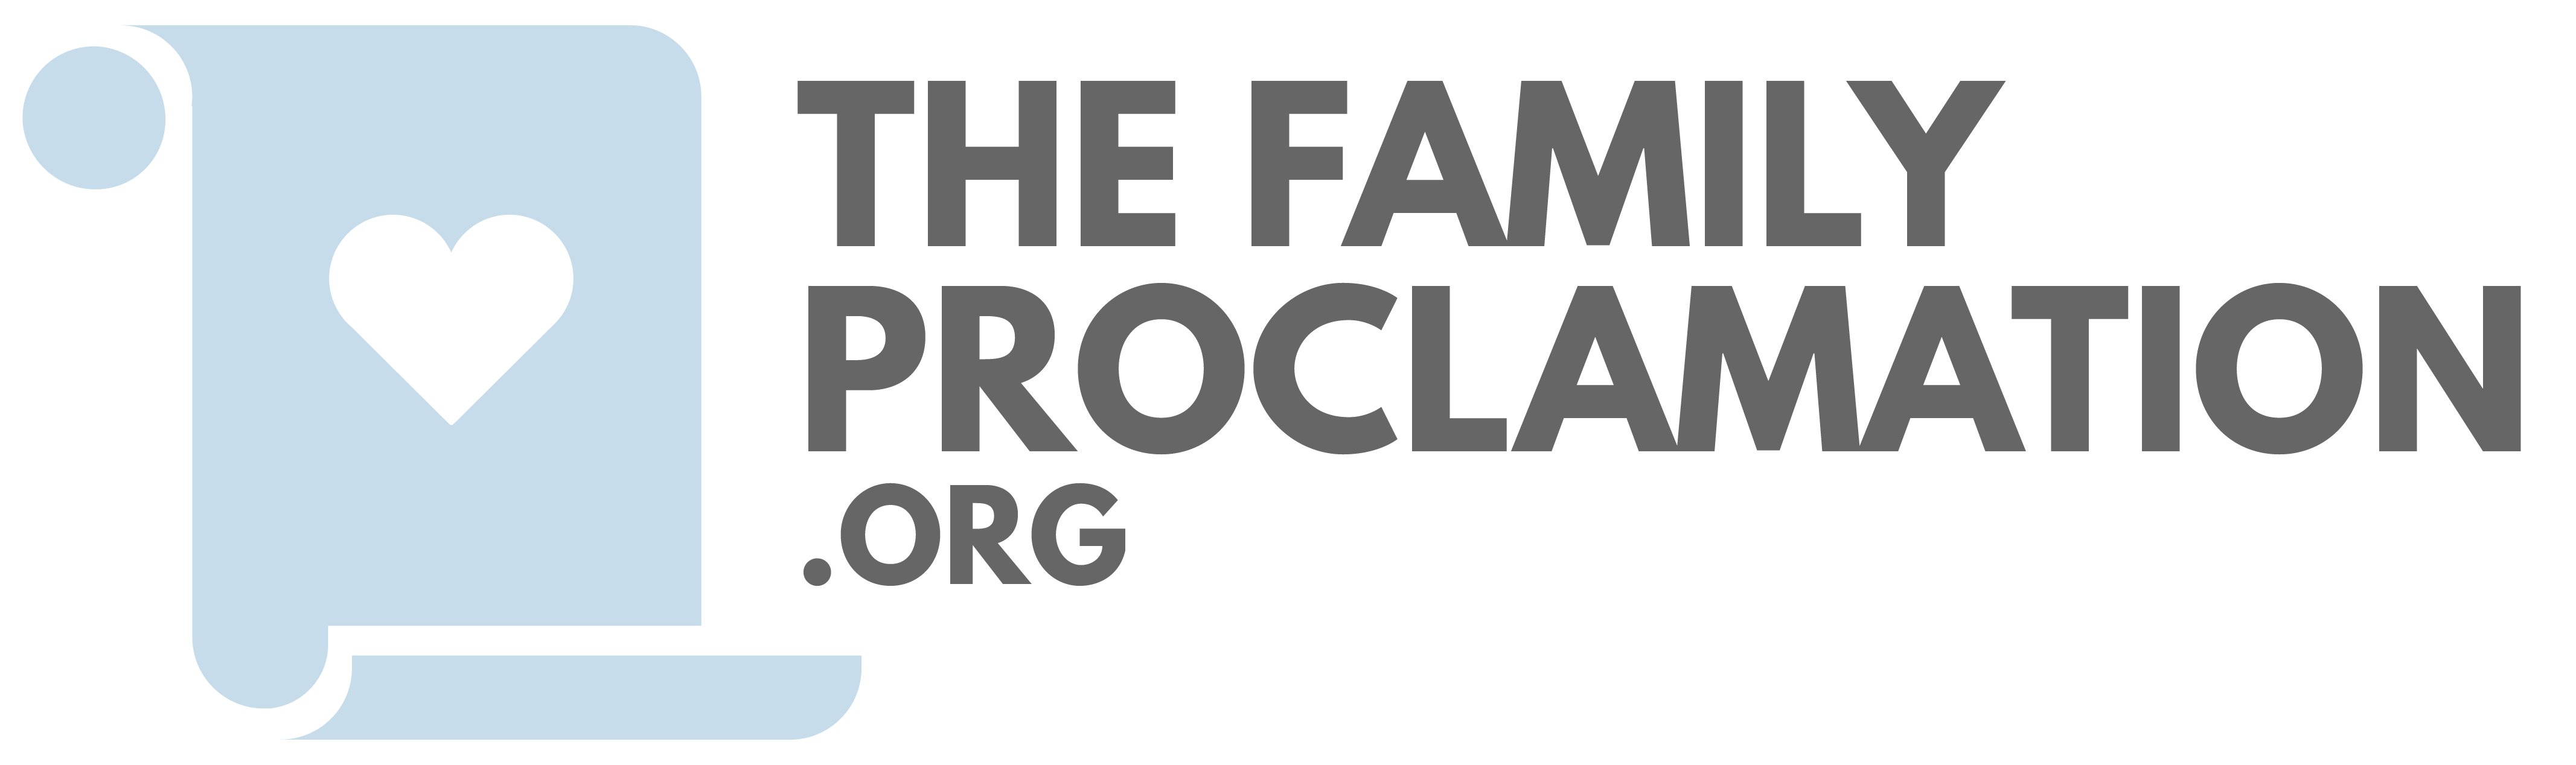 The Family Proclamation